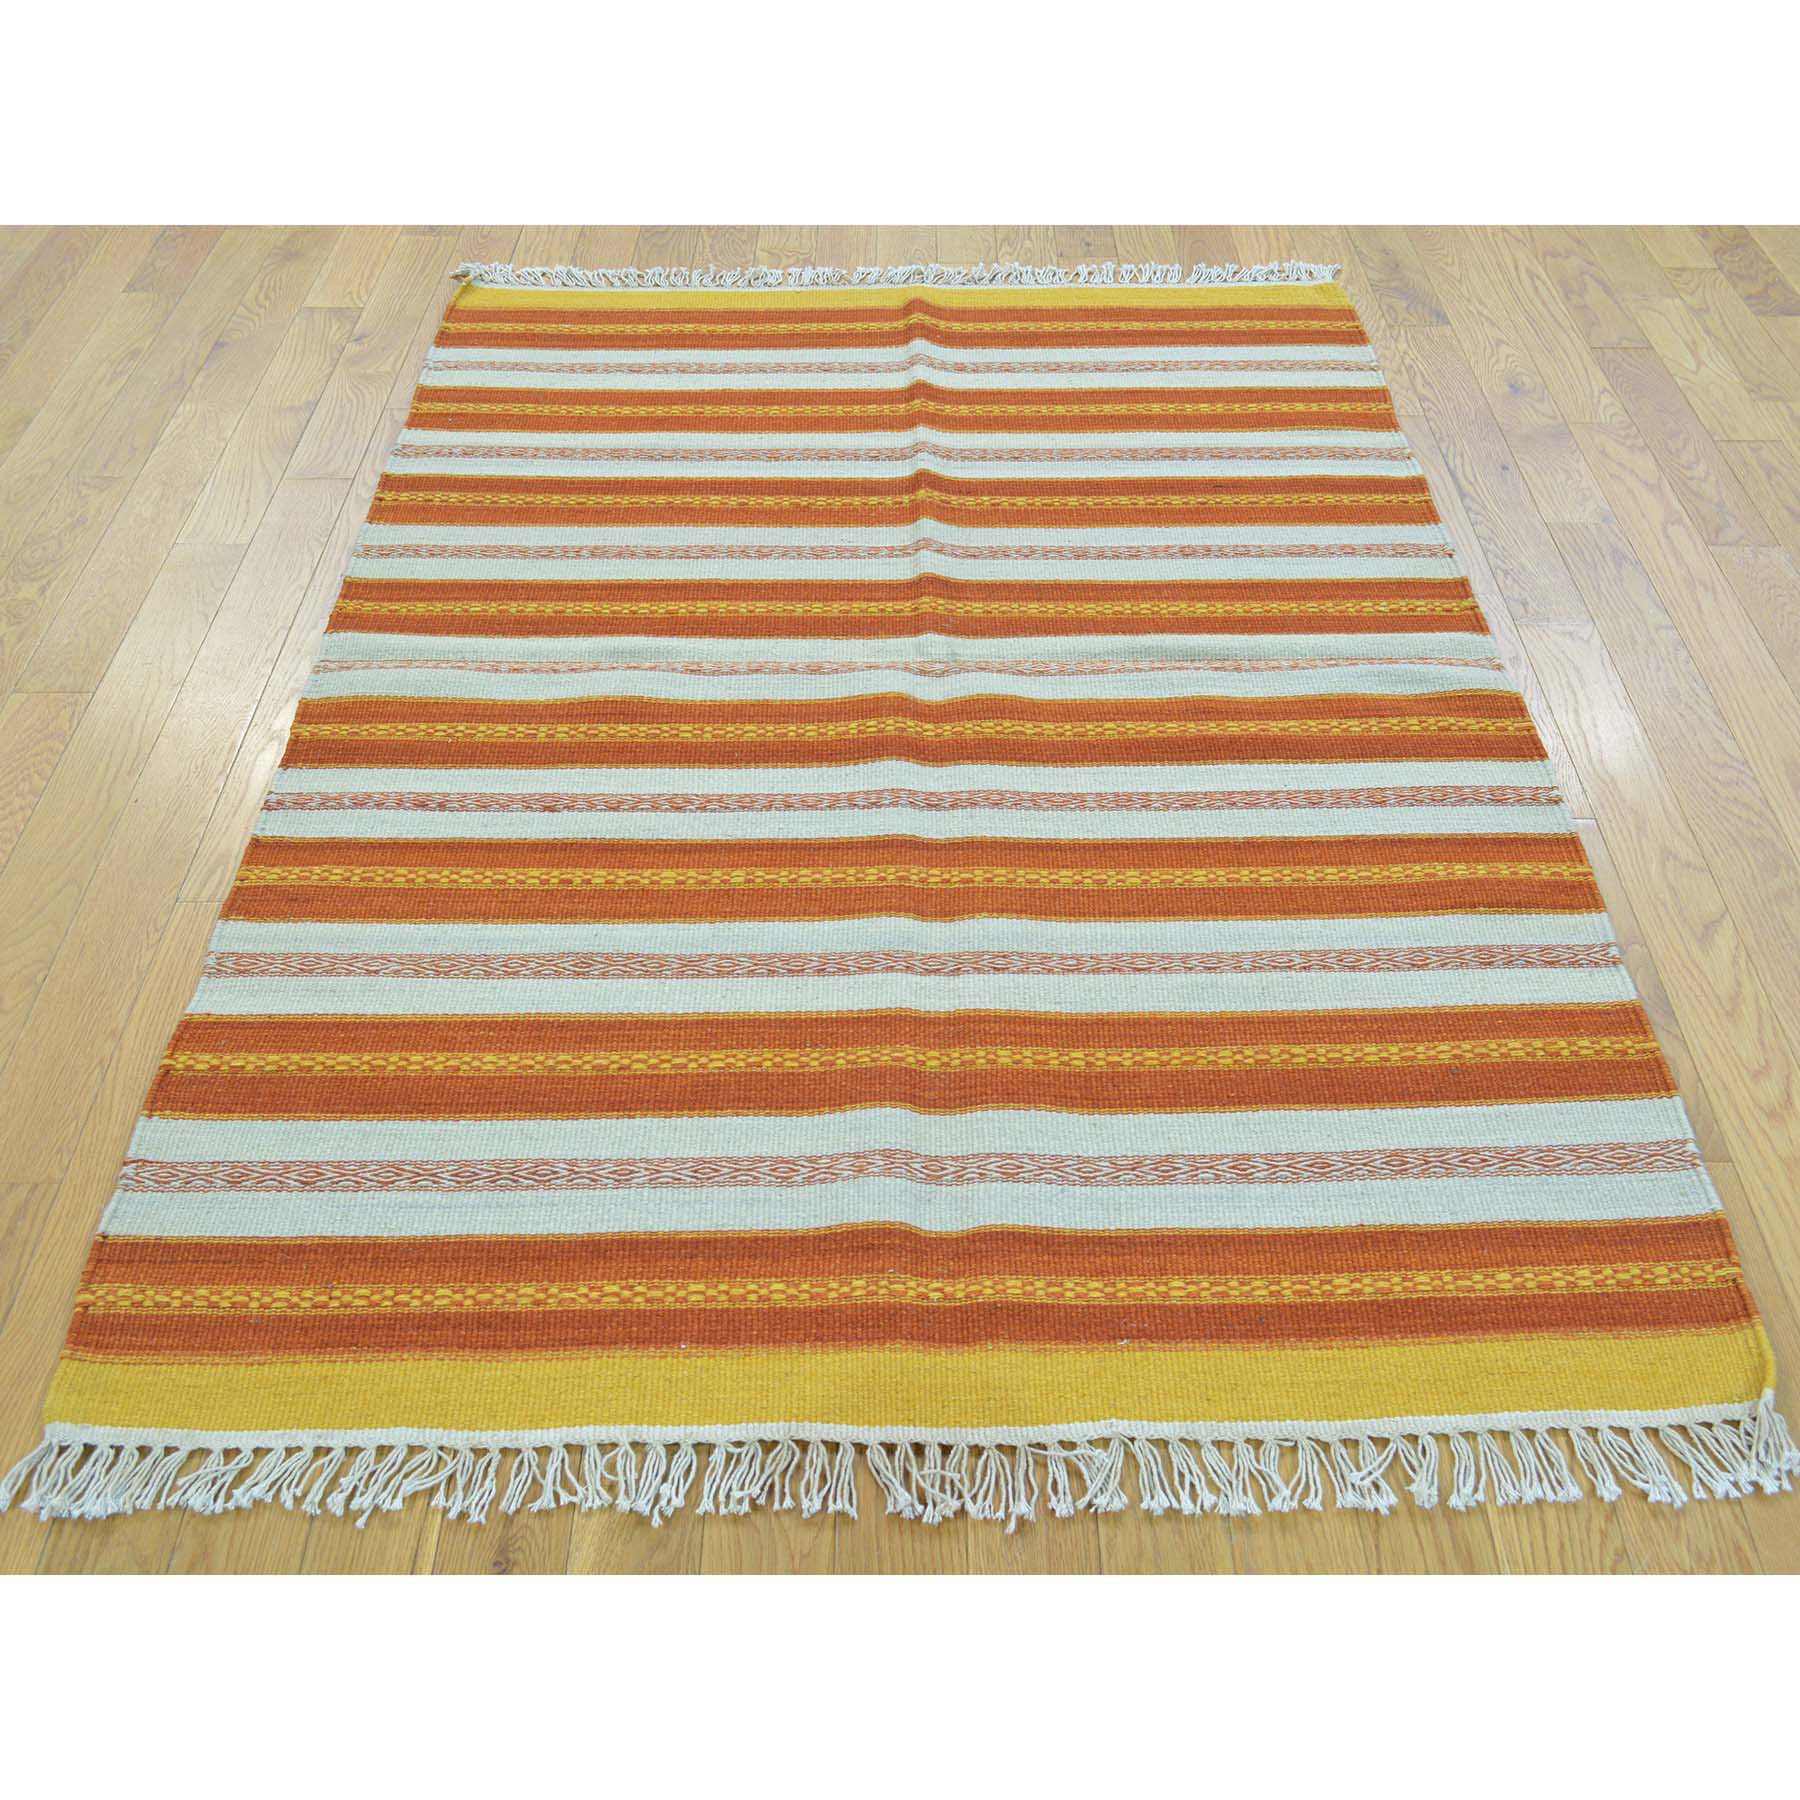 3-10 x5-10  Flat Weave Reversible Hand Woven Durie Kilim Pure Wool Rug